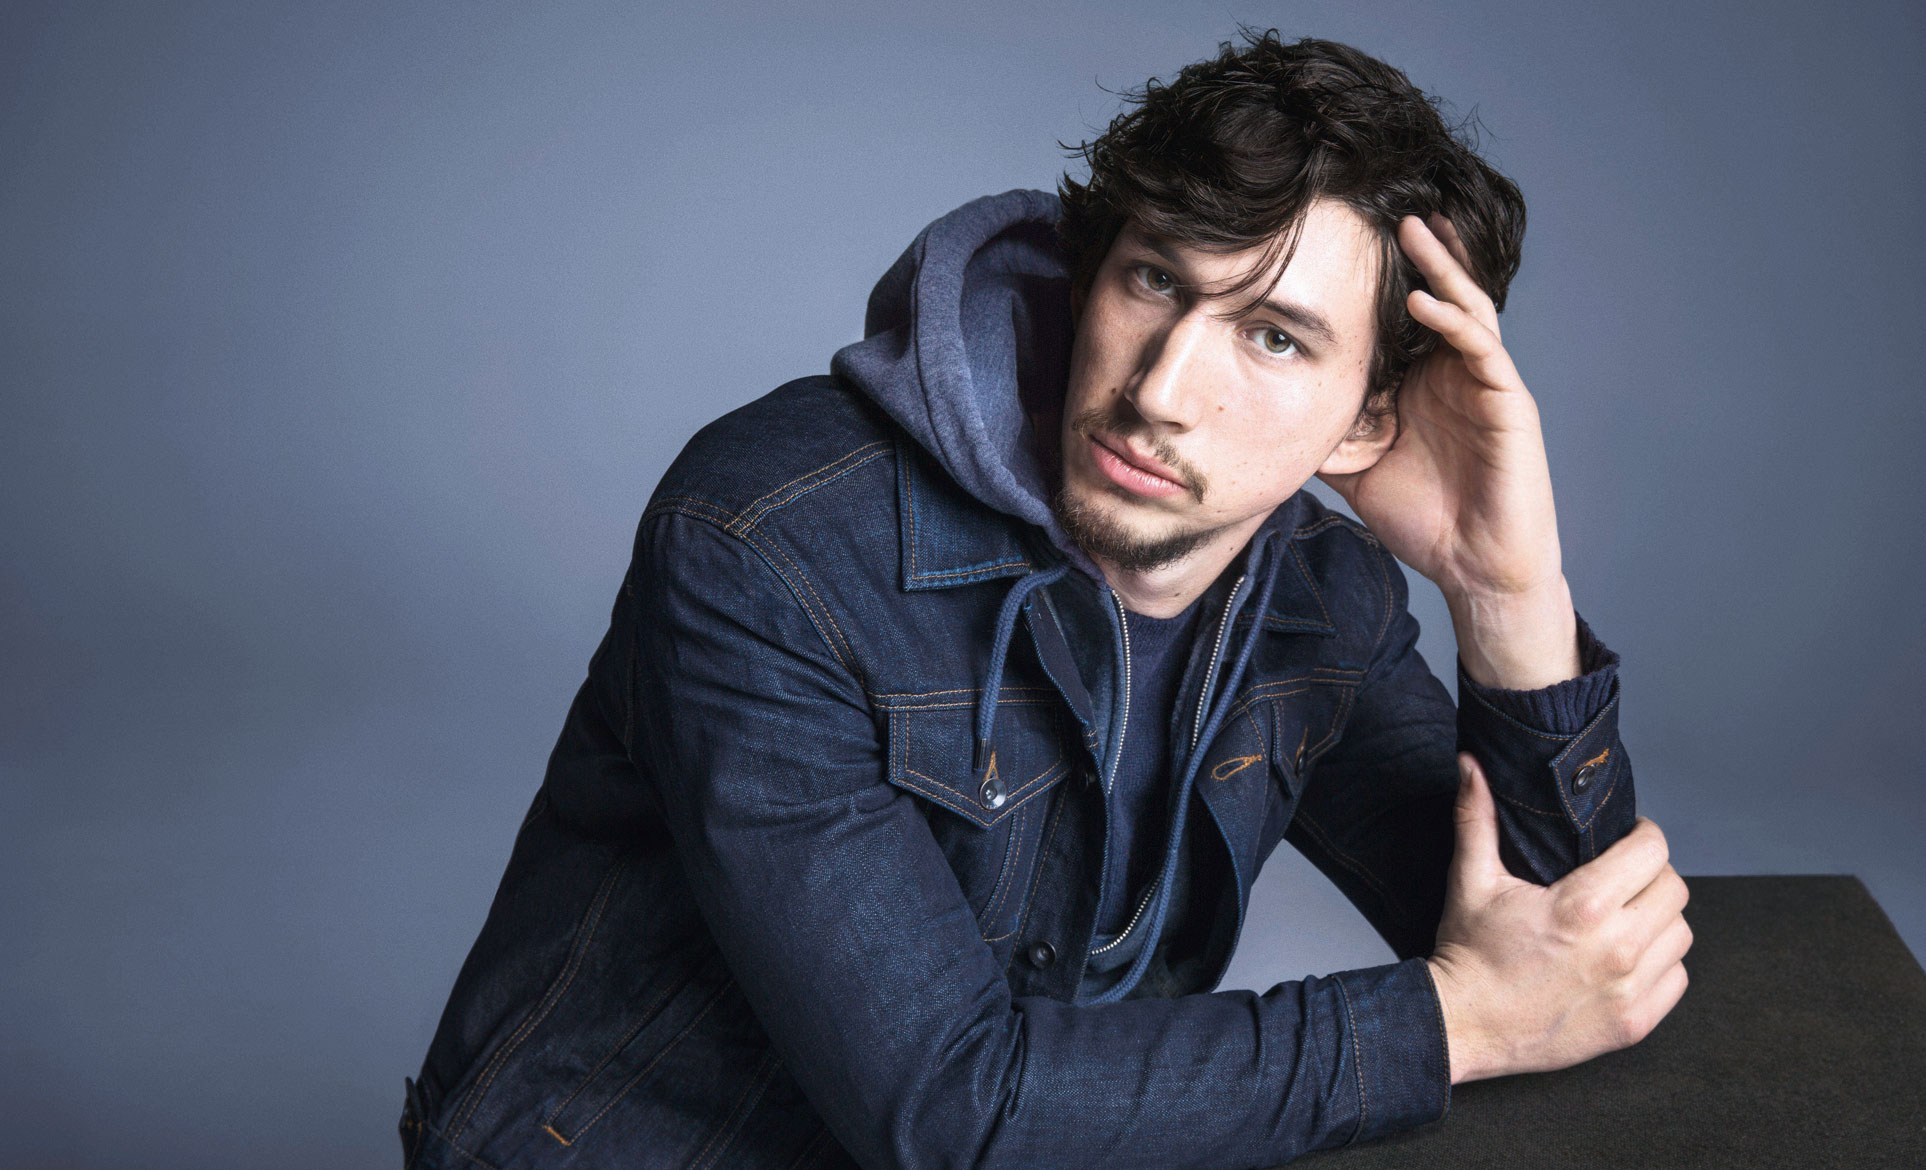 adam-driver-gap-1-gq-8aug13-pr_b_1